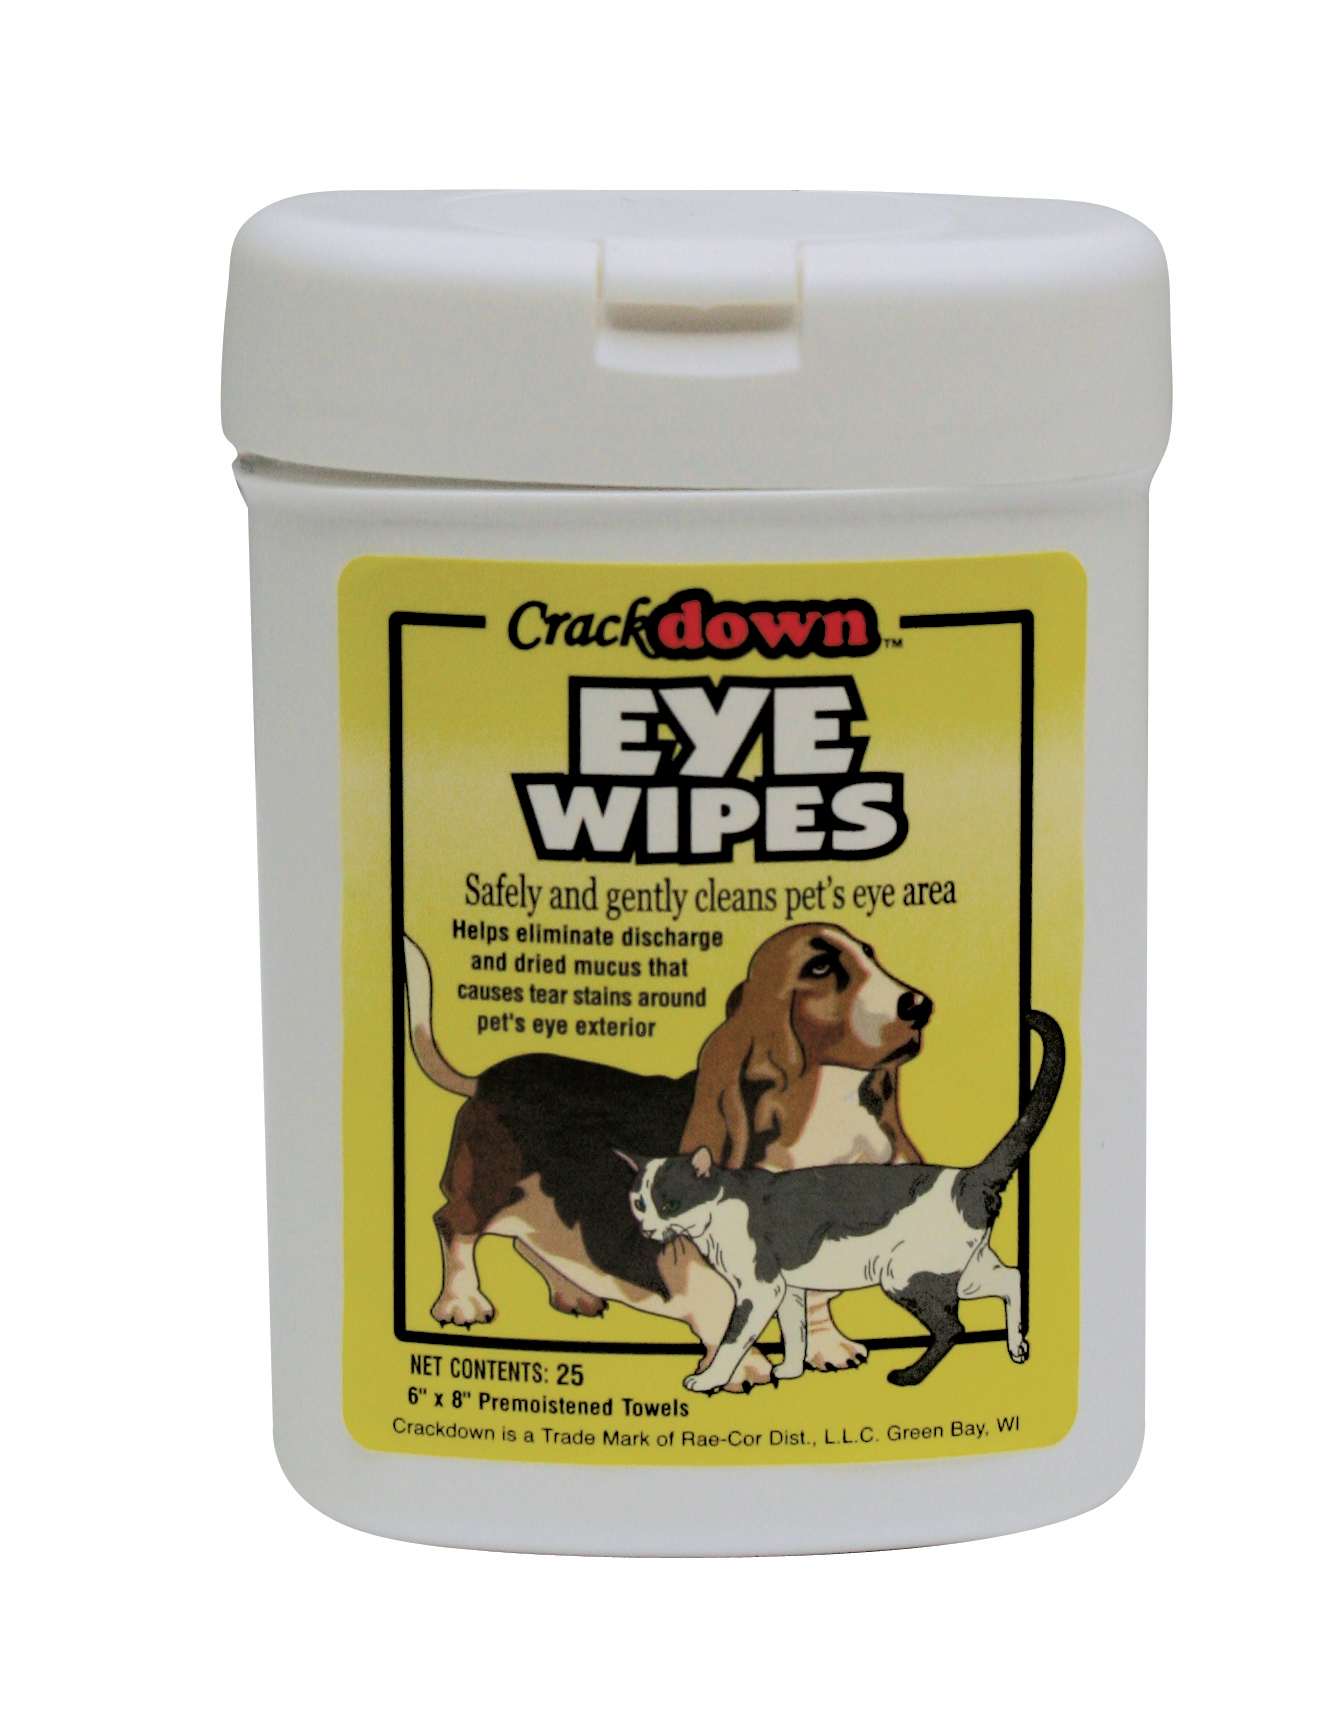 EYE WIPES - 25 COUNT CANISTER